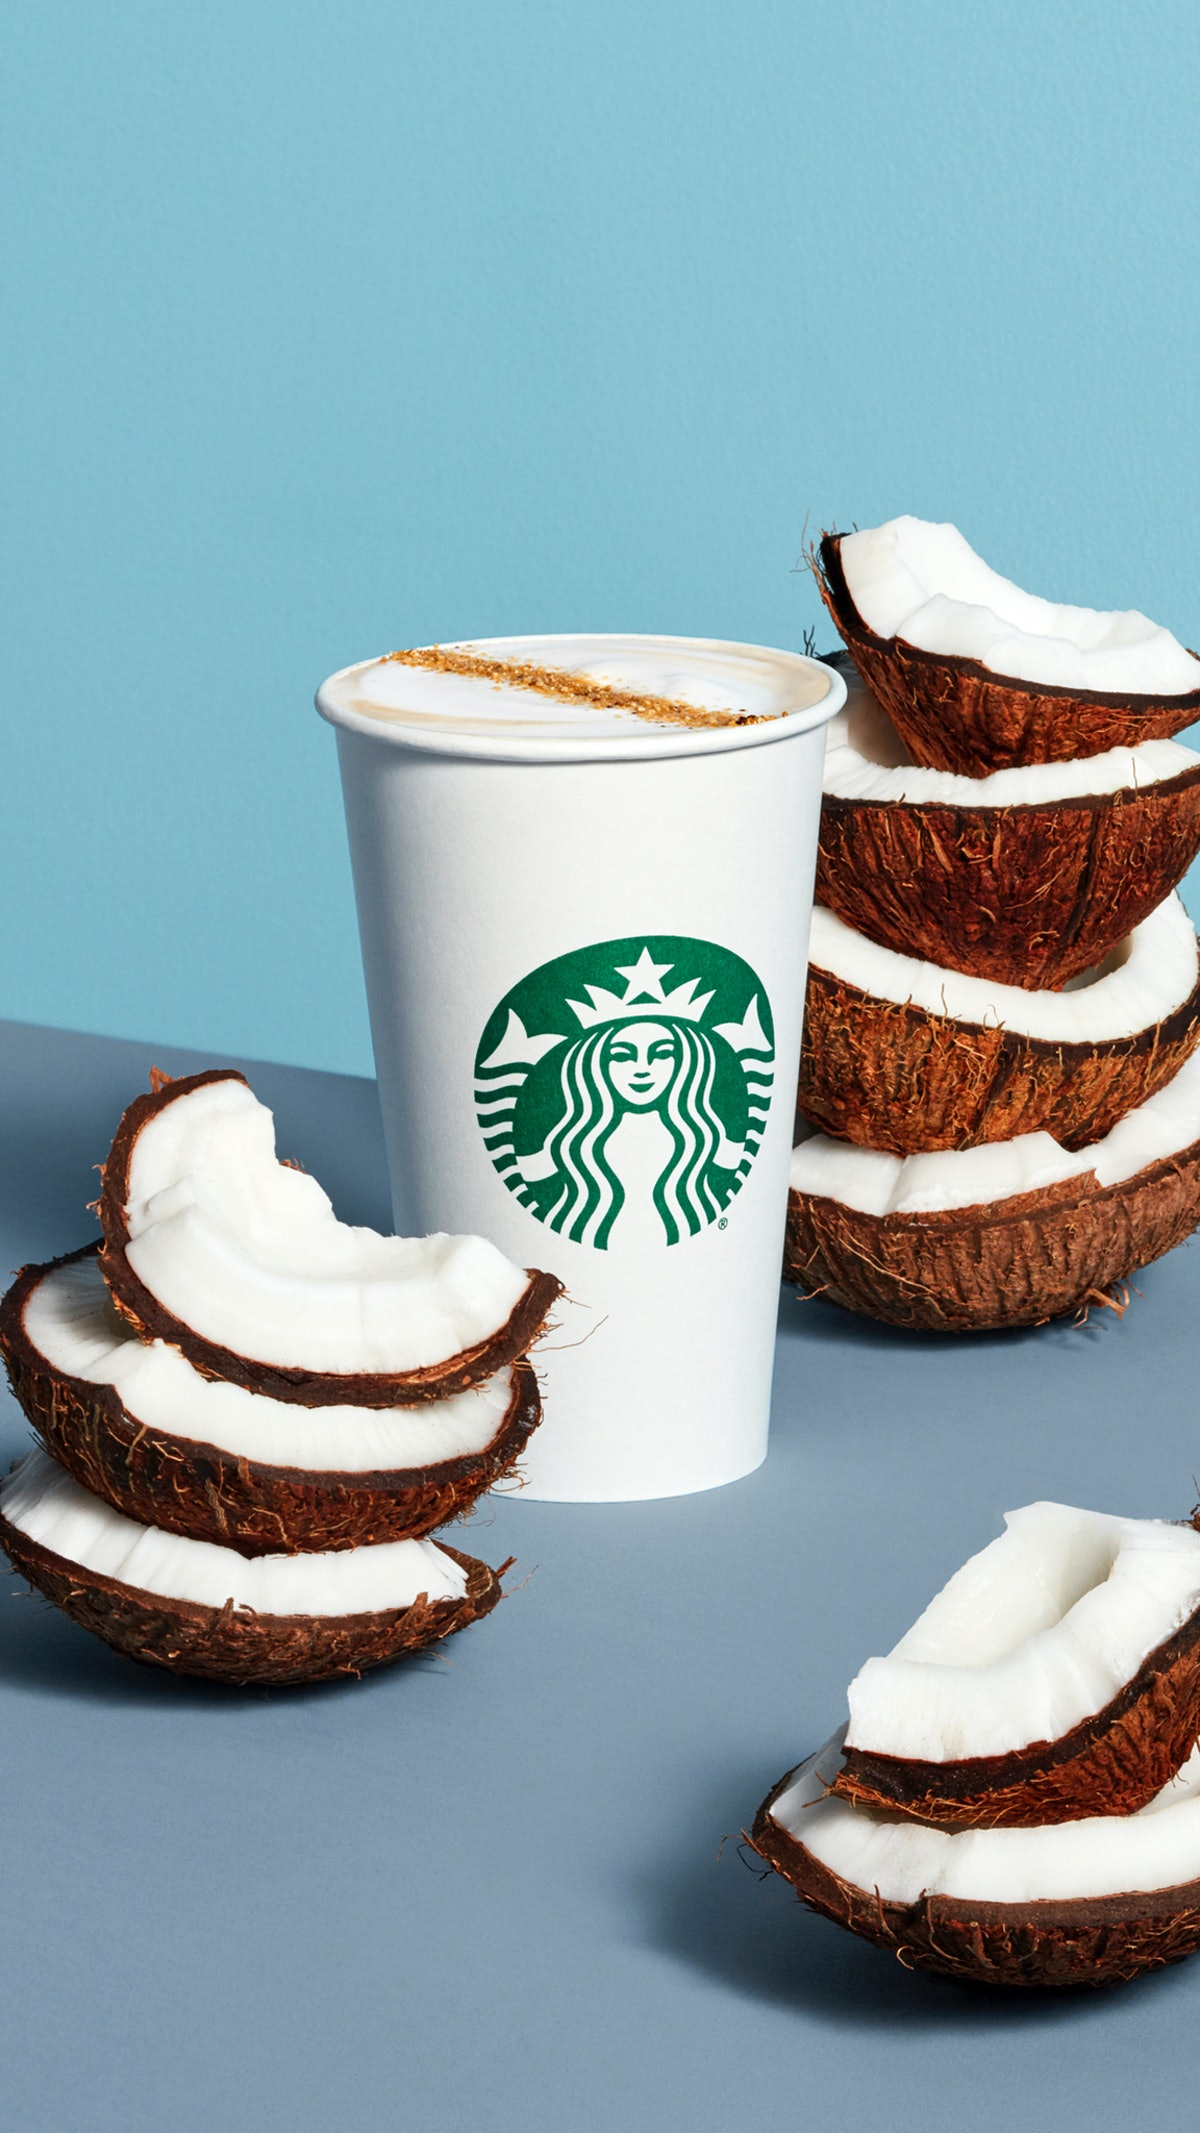 Starbucks' Almondmilk Honey Flat White will be joining two versions made with coconut milk and oat milk.